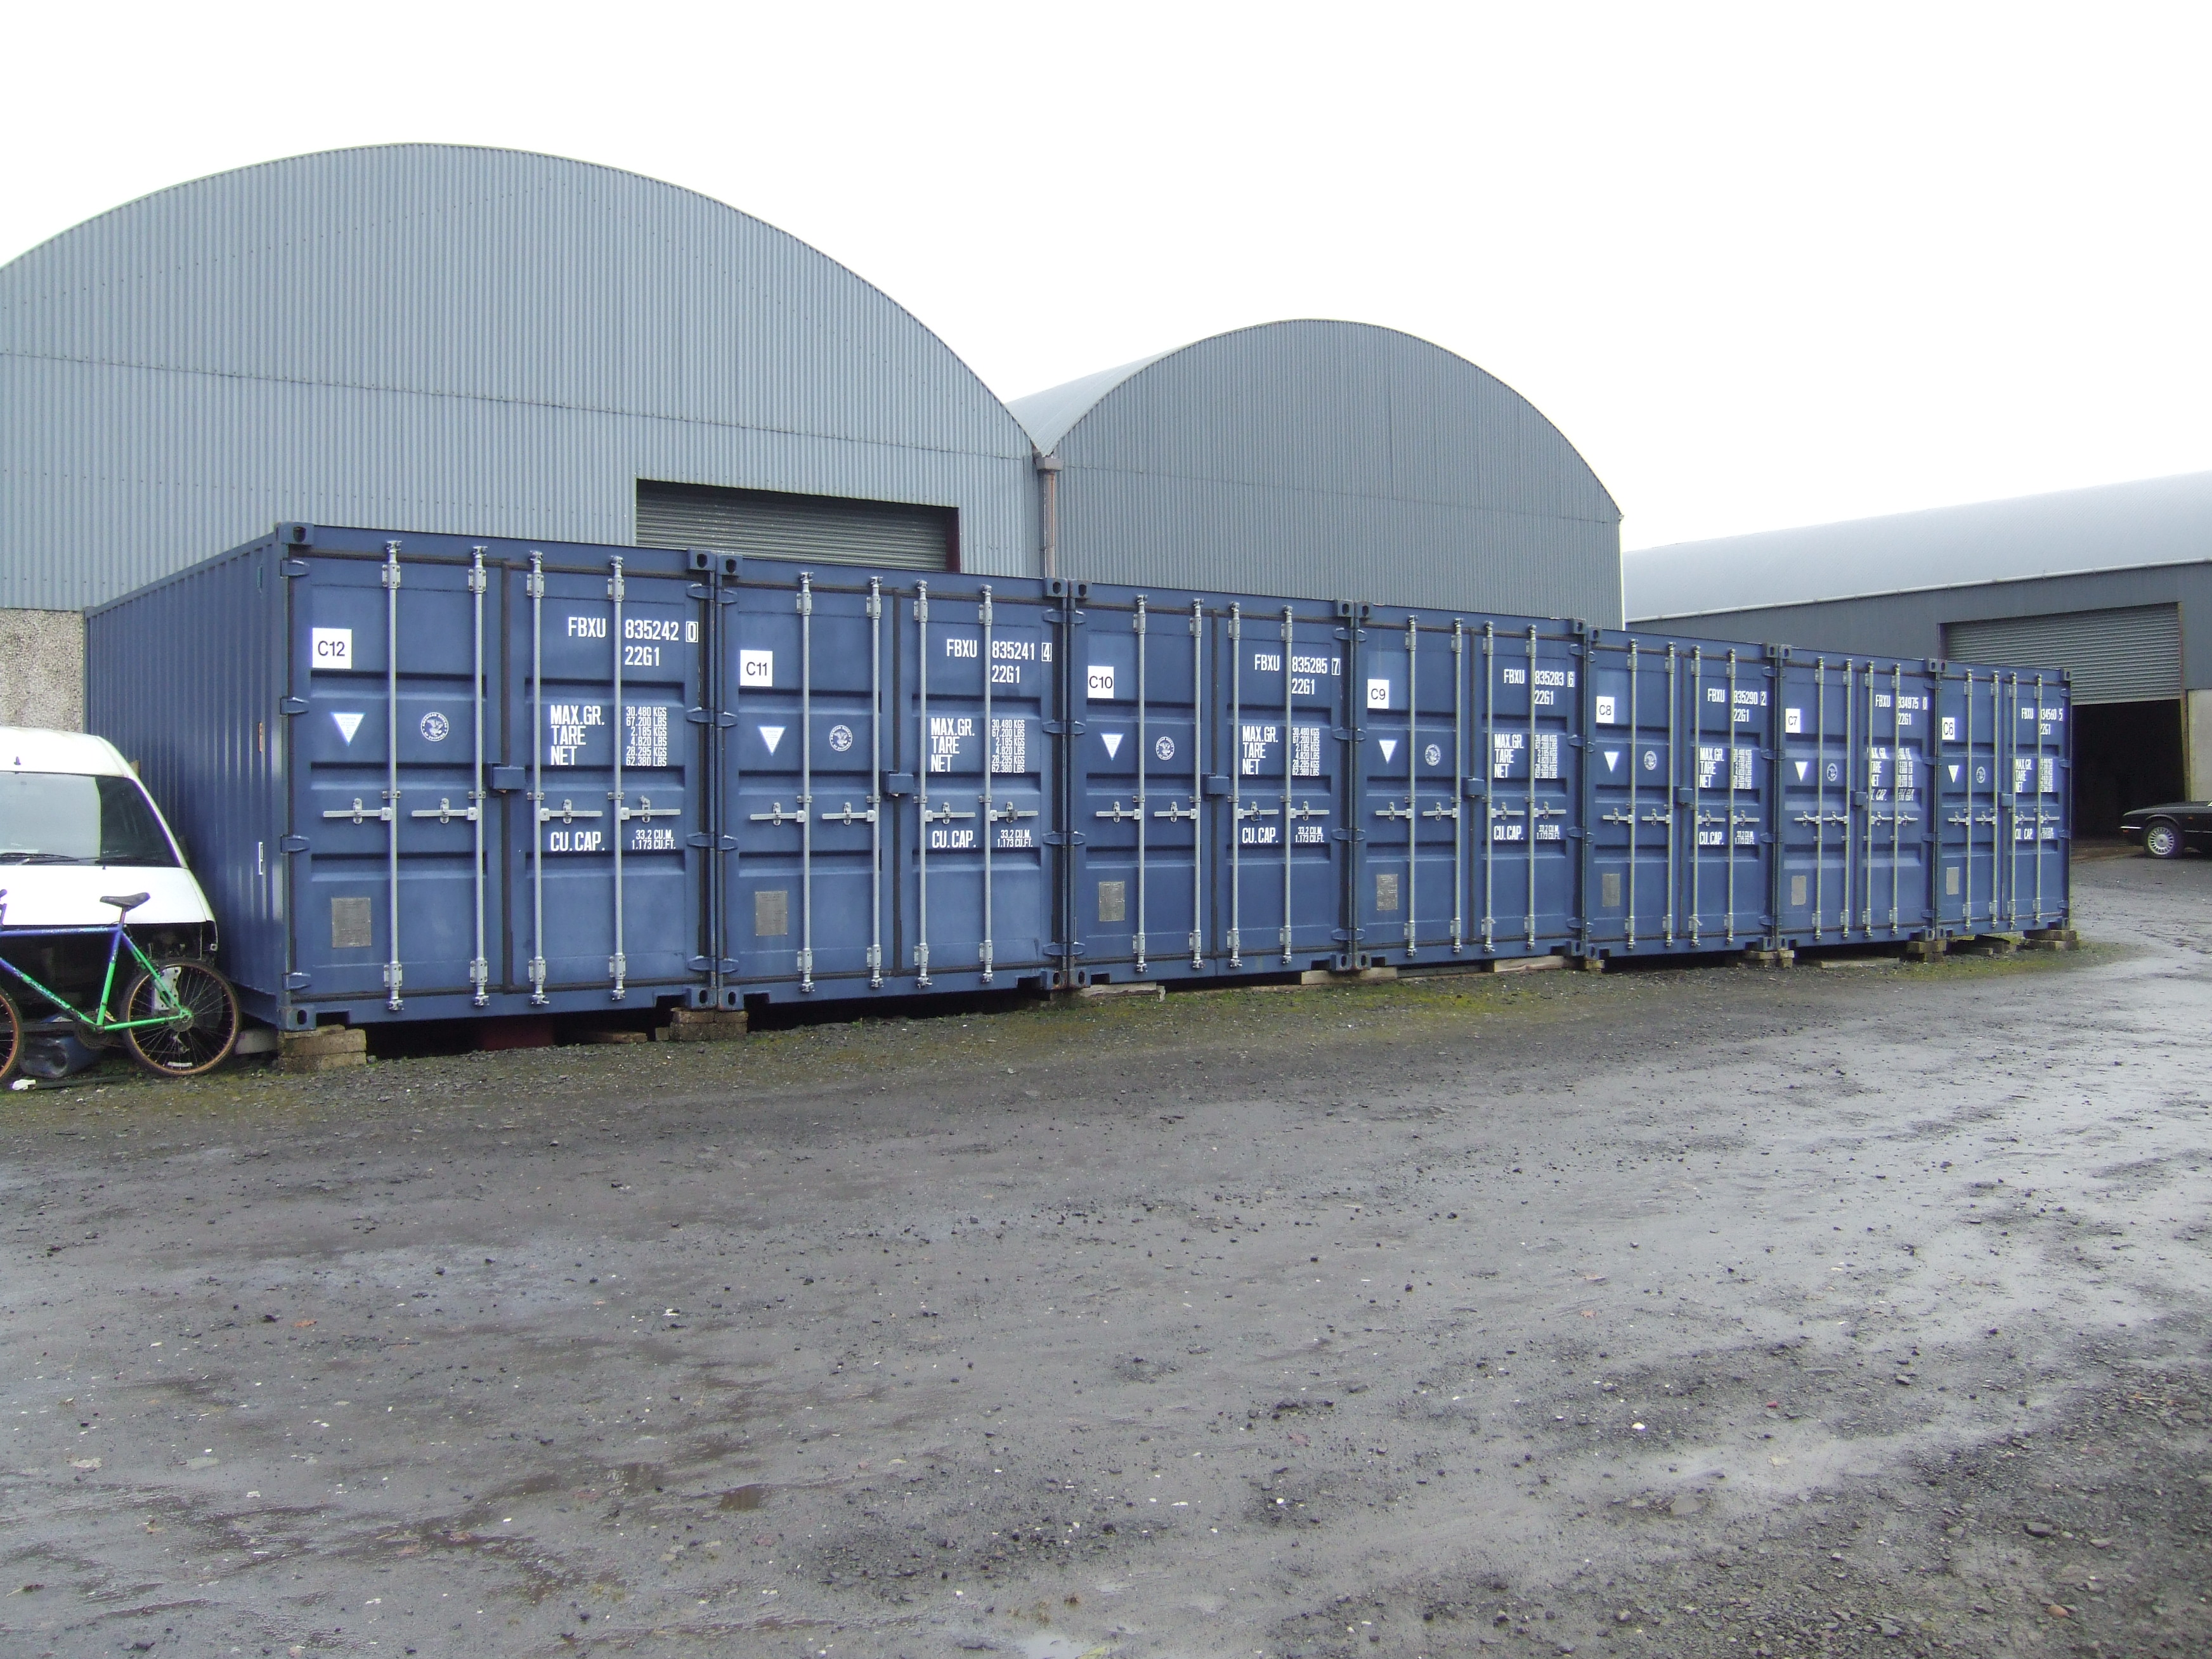 CLEUD approved for retention of 21 shipping containers used for self